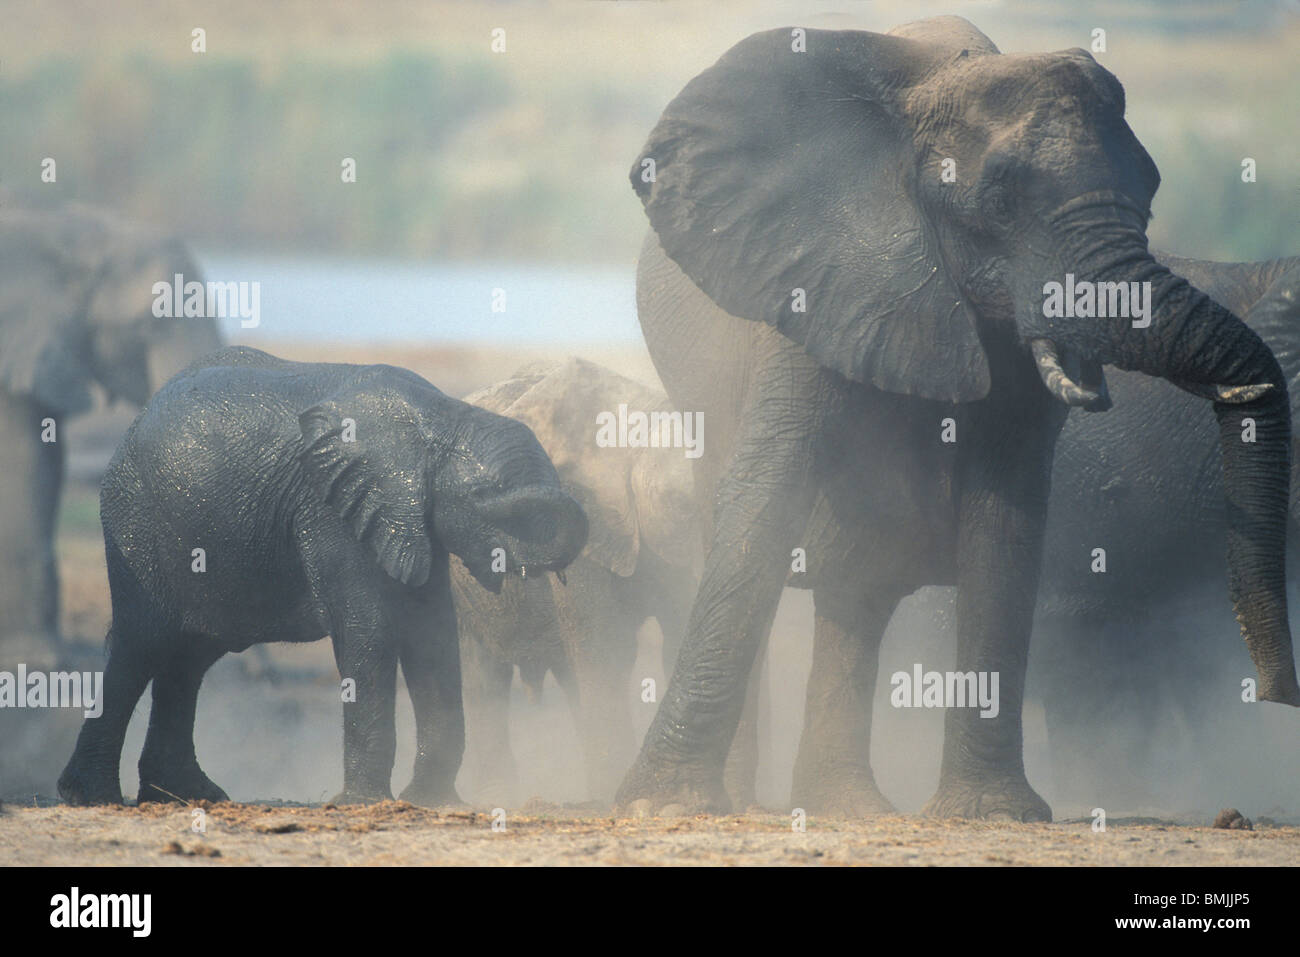 Botswana, Chobe National Park, Elephant herd (Loxodonta africana) raises cloud of dust along Chobe River - Stock Image